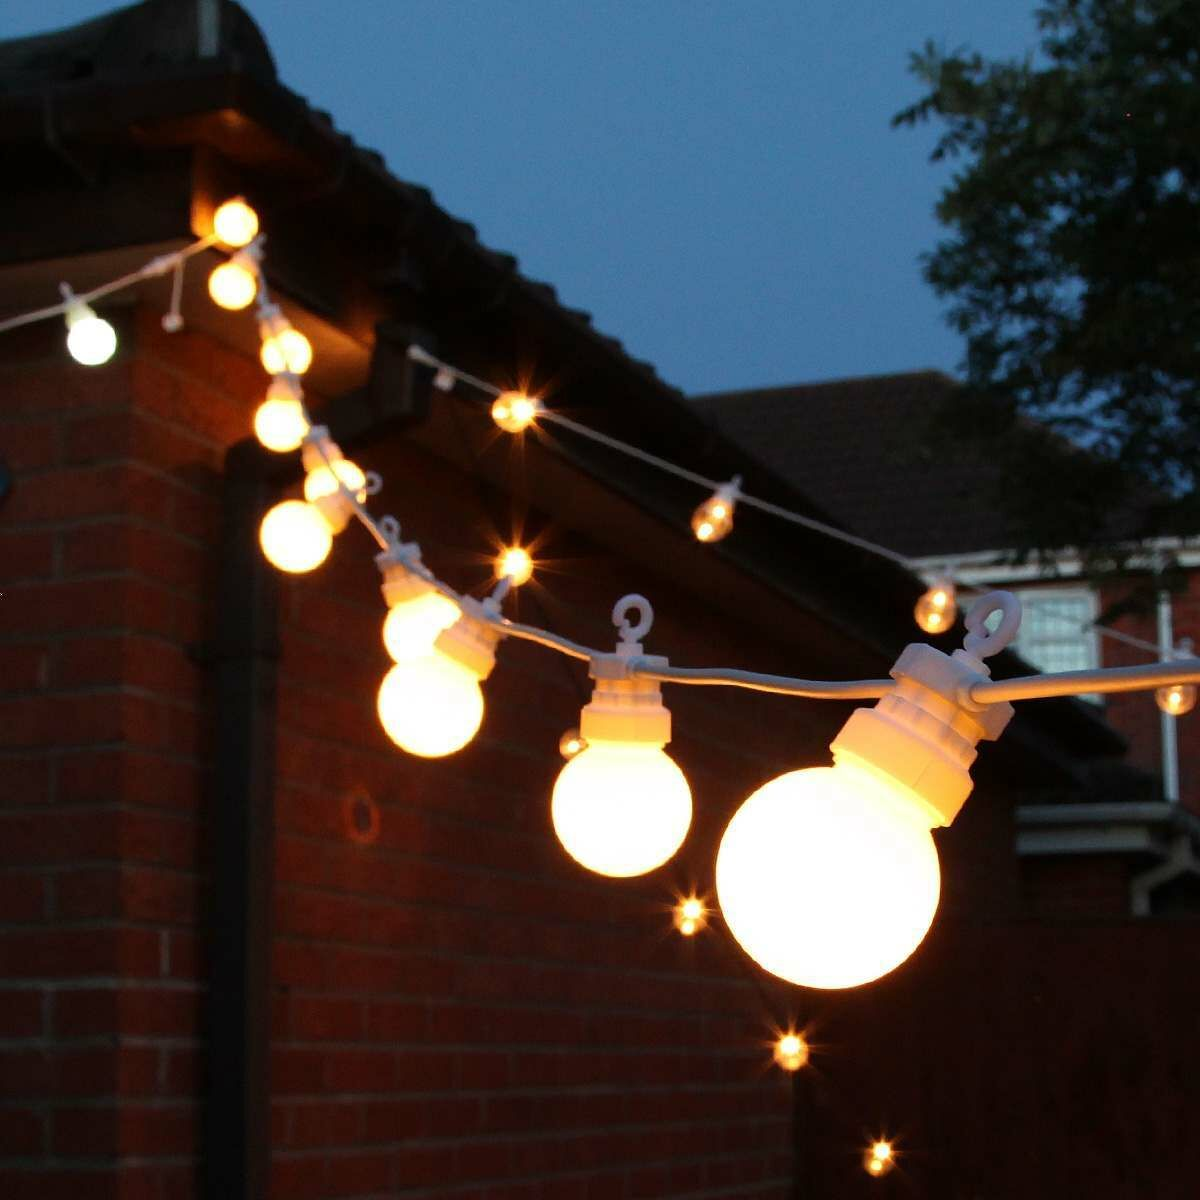 Outdoor Festoon Lights, Connectable, Warm White LEDs, Frosted Bulbs, White Cable